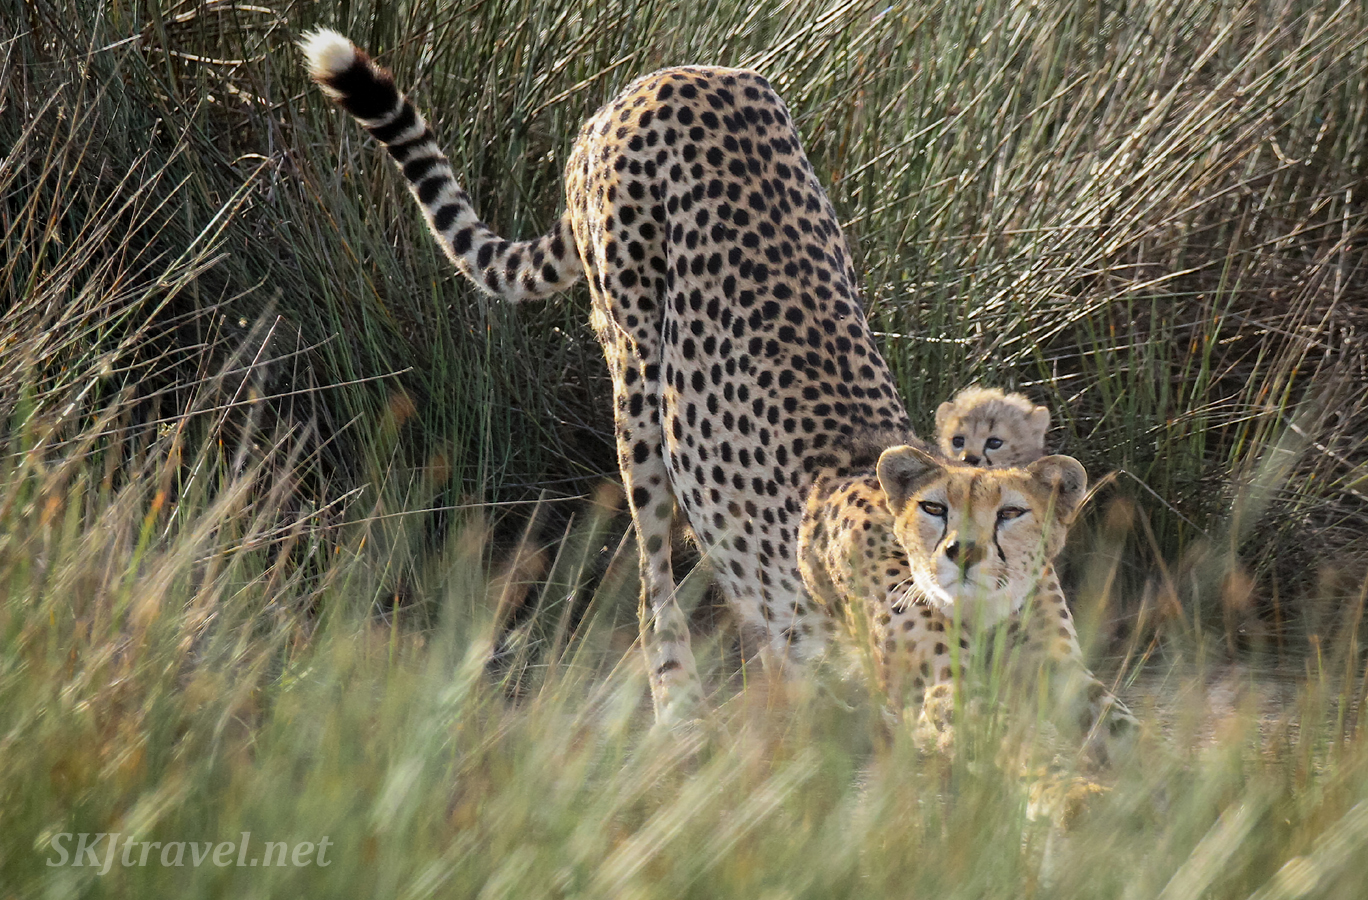 Cheetah cub peeking over the top of mom's head as she stretches. Ndutu, Tanzania.